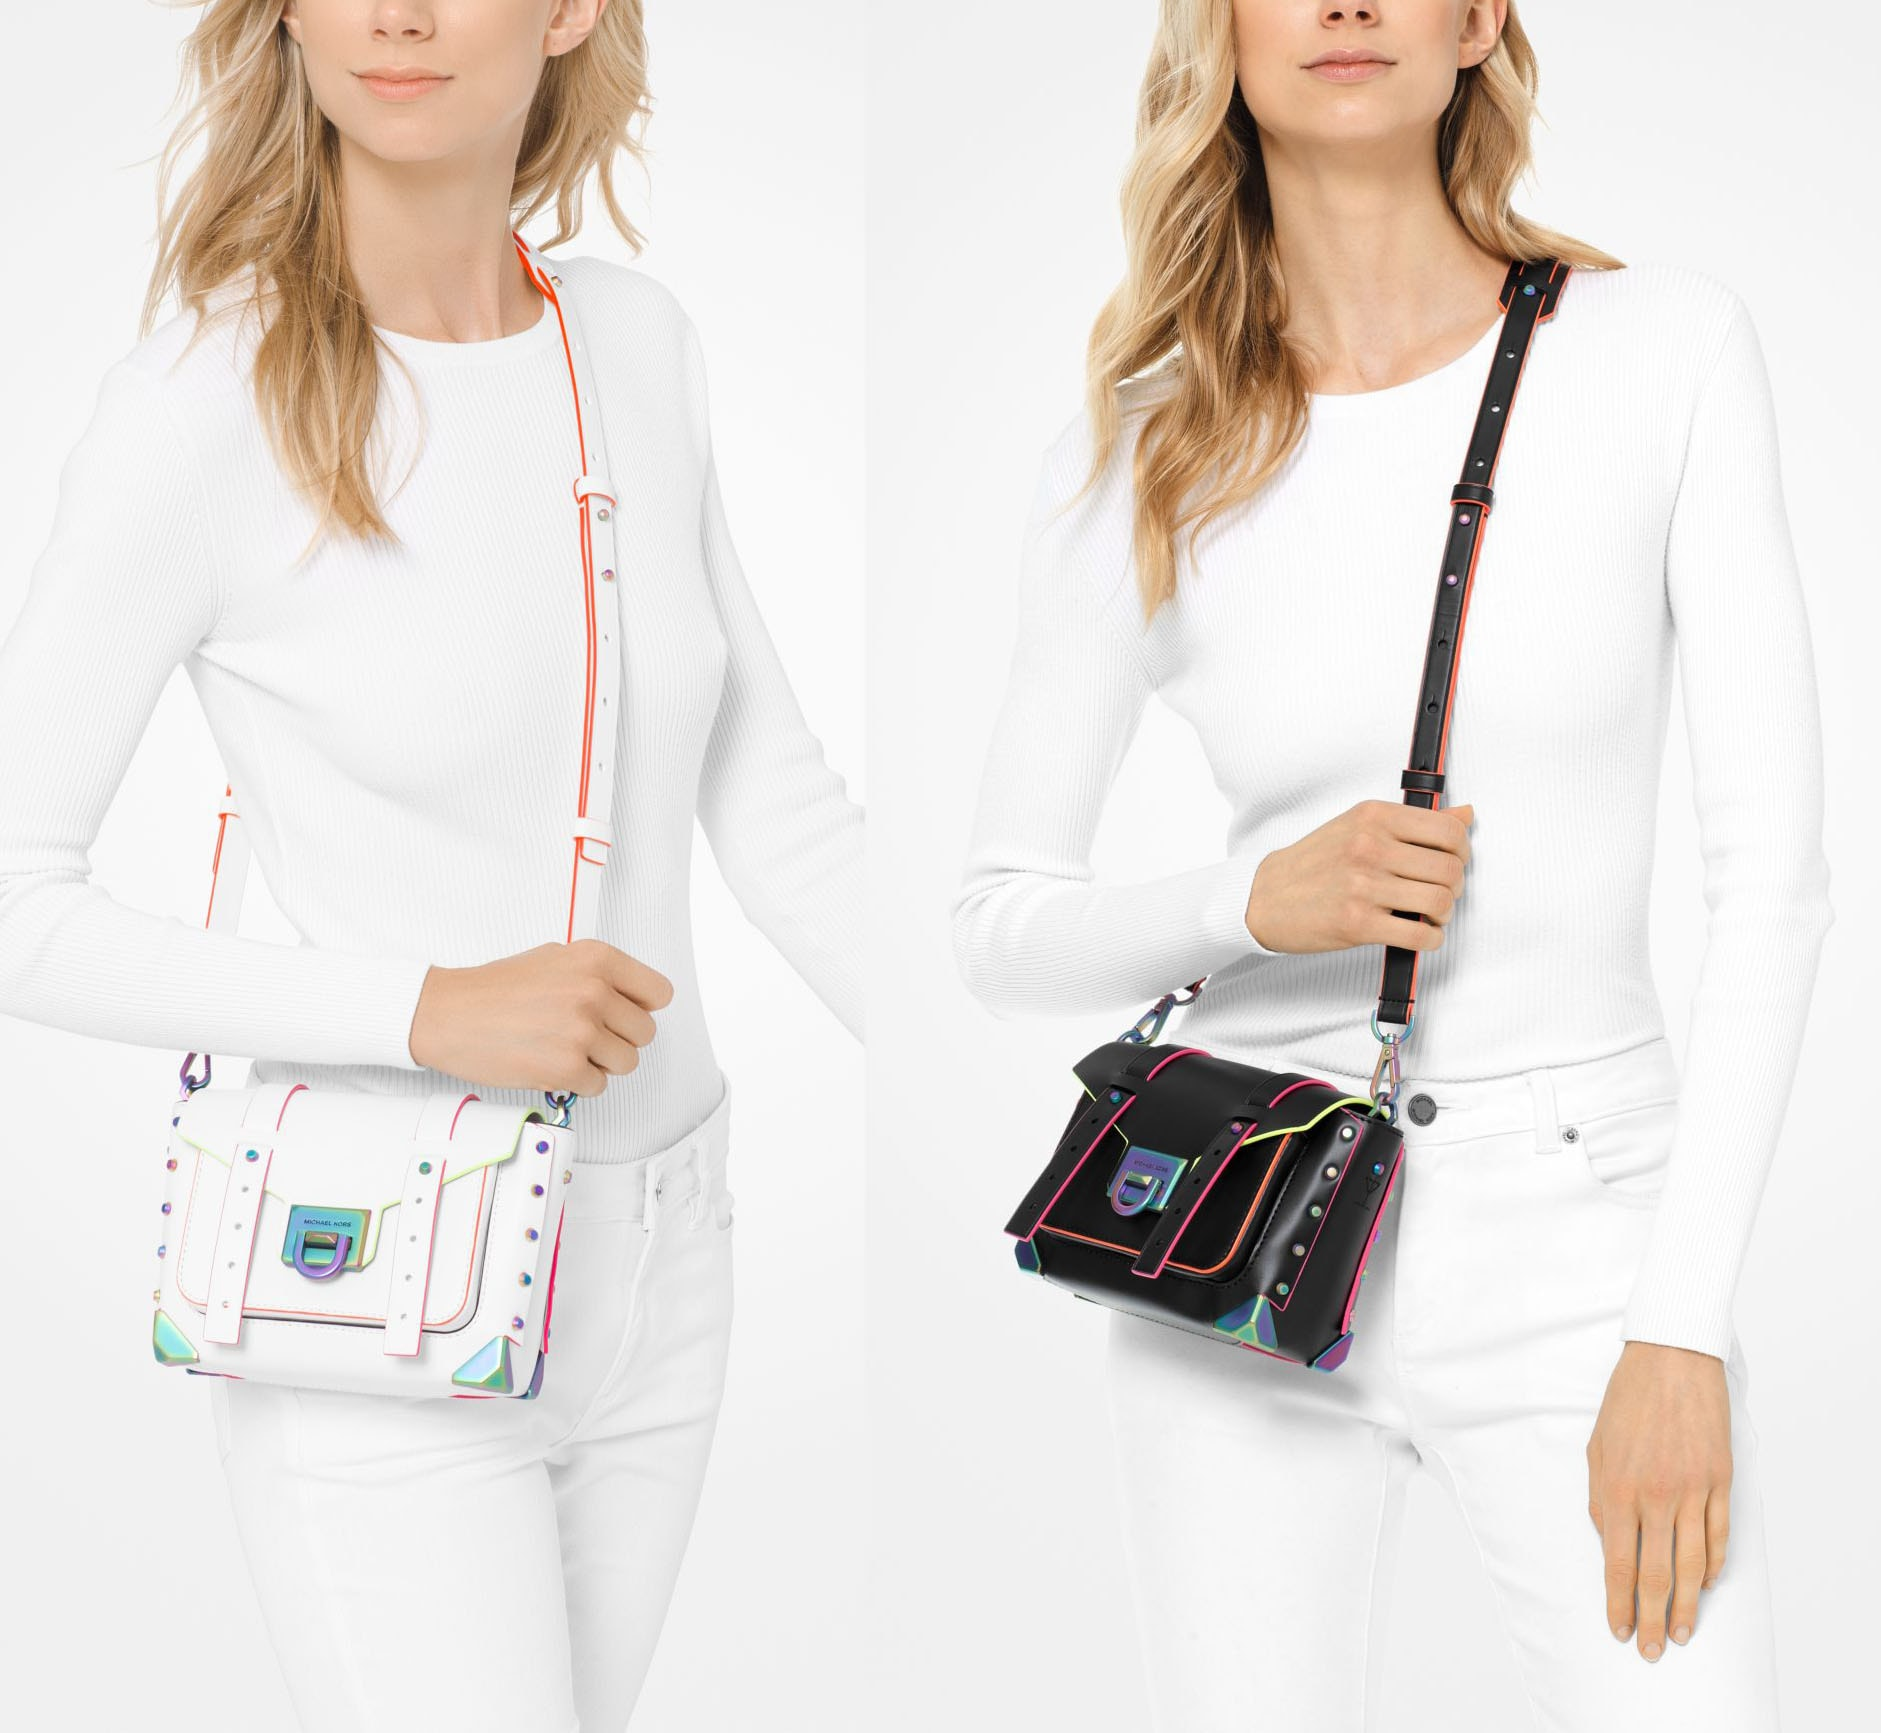 Available in three colors, the Manhattan crossbody bag features chic neon contrasting trims and iridescent metal hardware